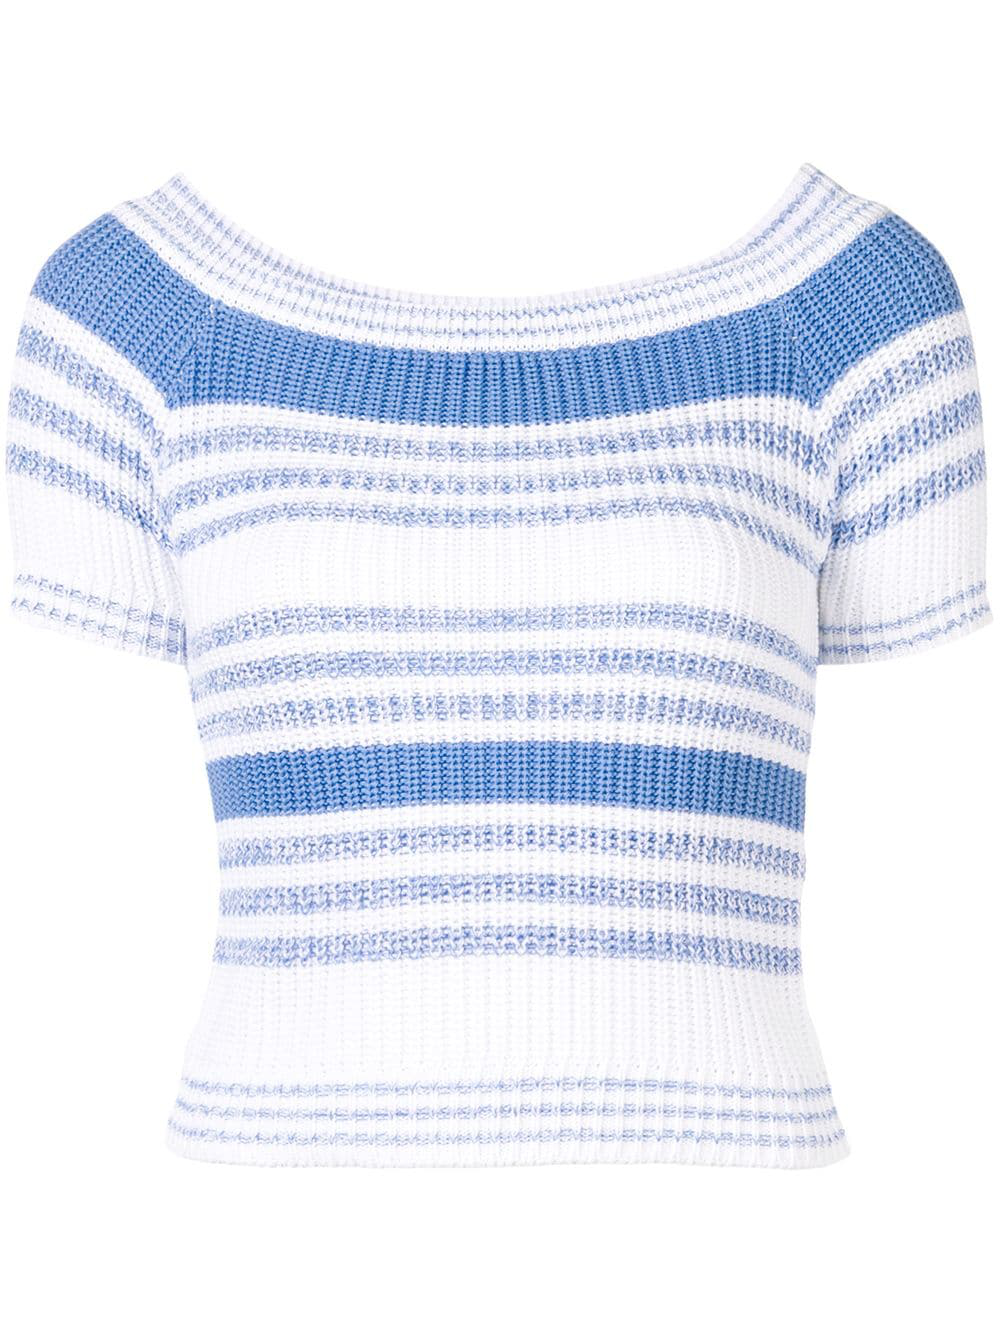 00b78d85c2 Red Valentino White And Blue Off-The-Shoulder Sweater